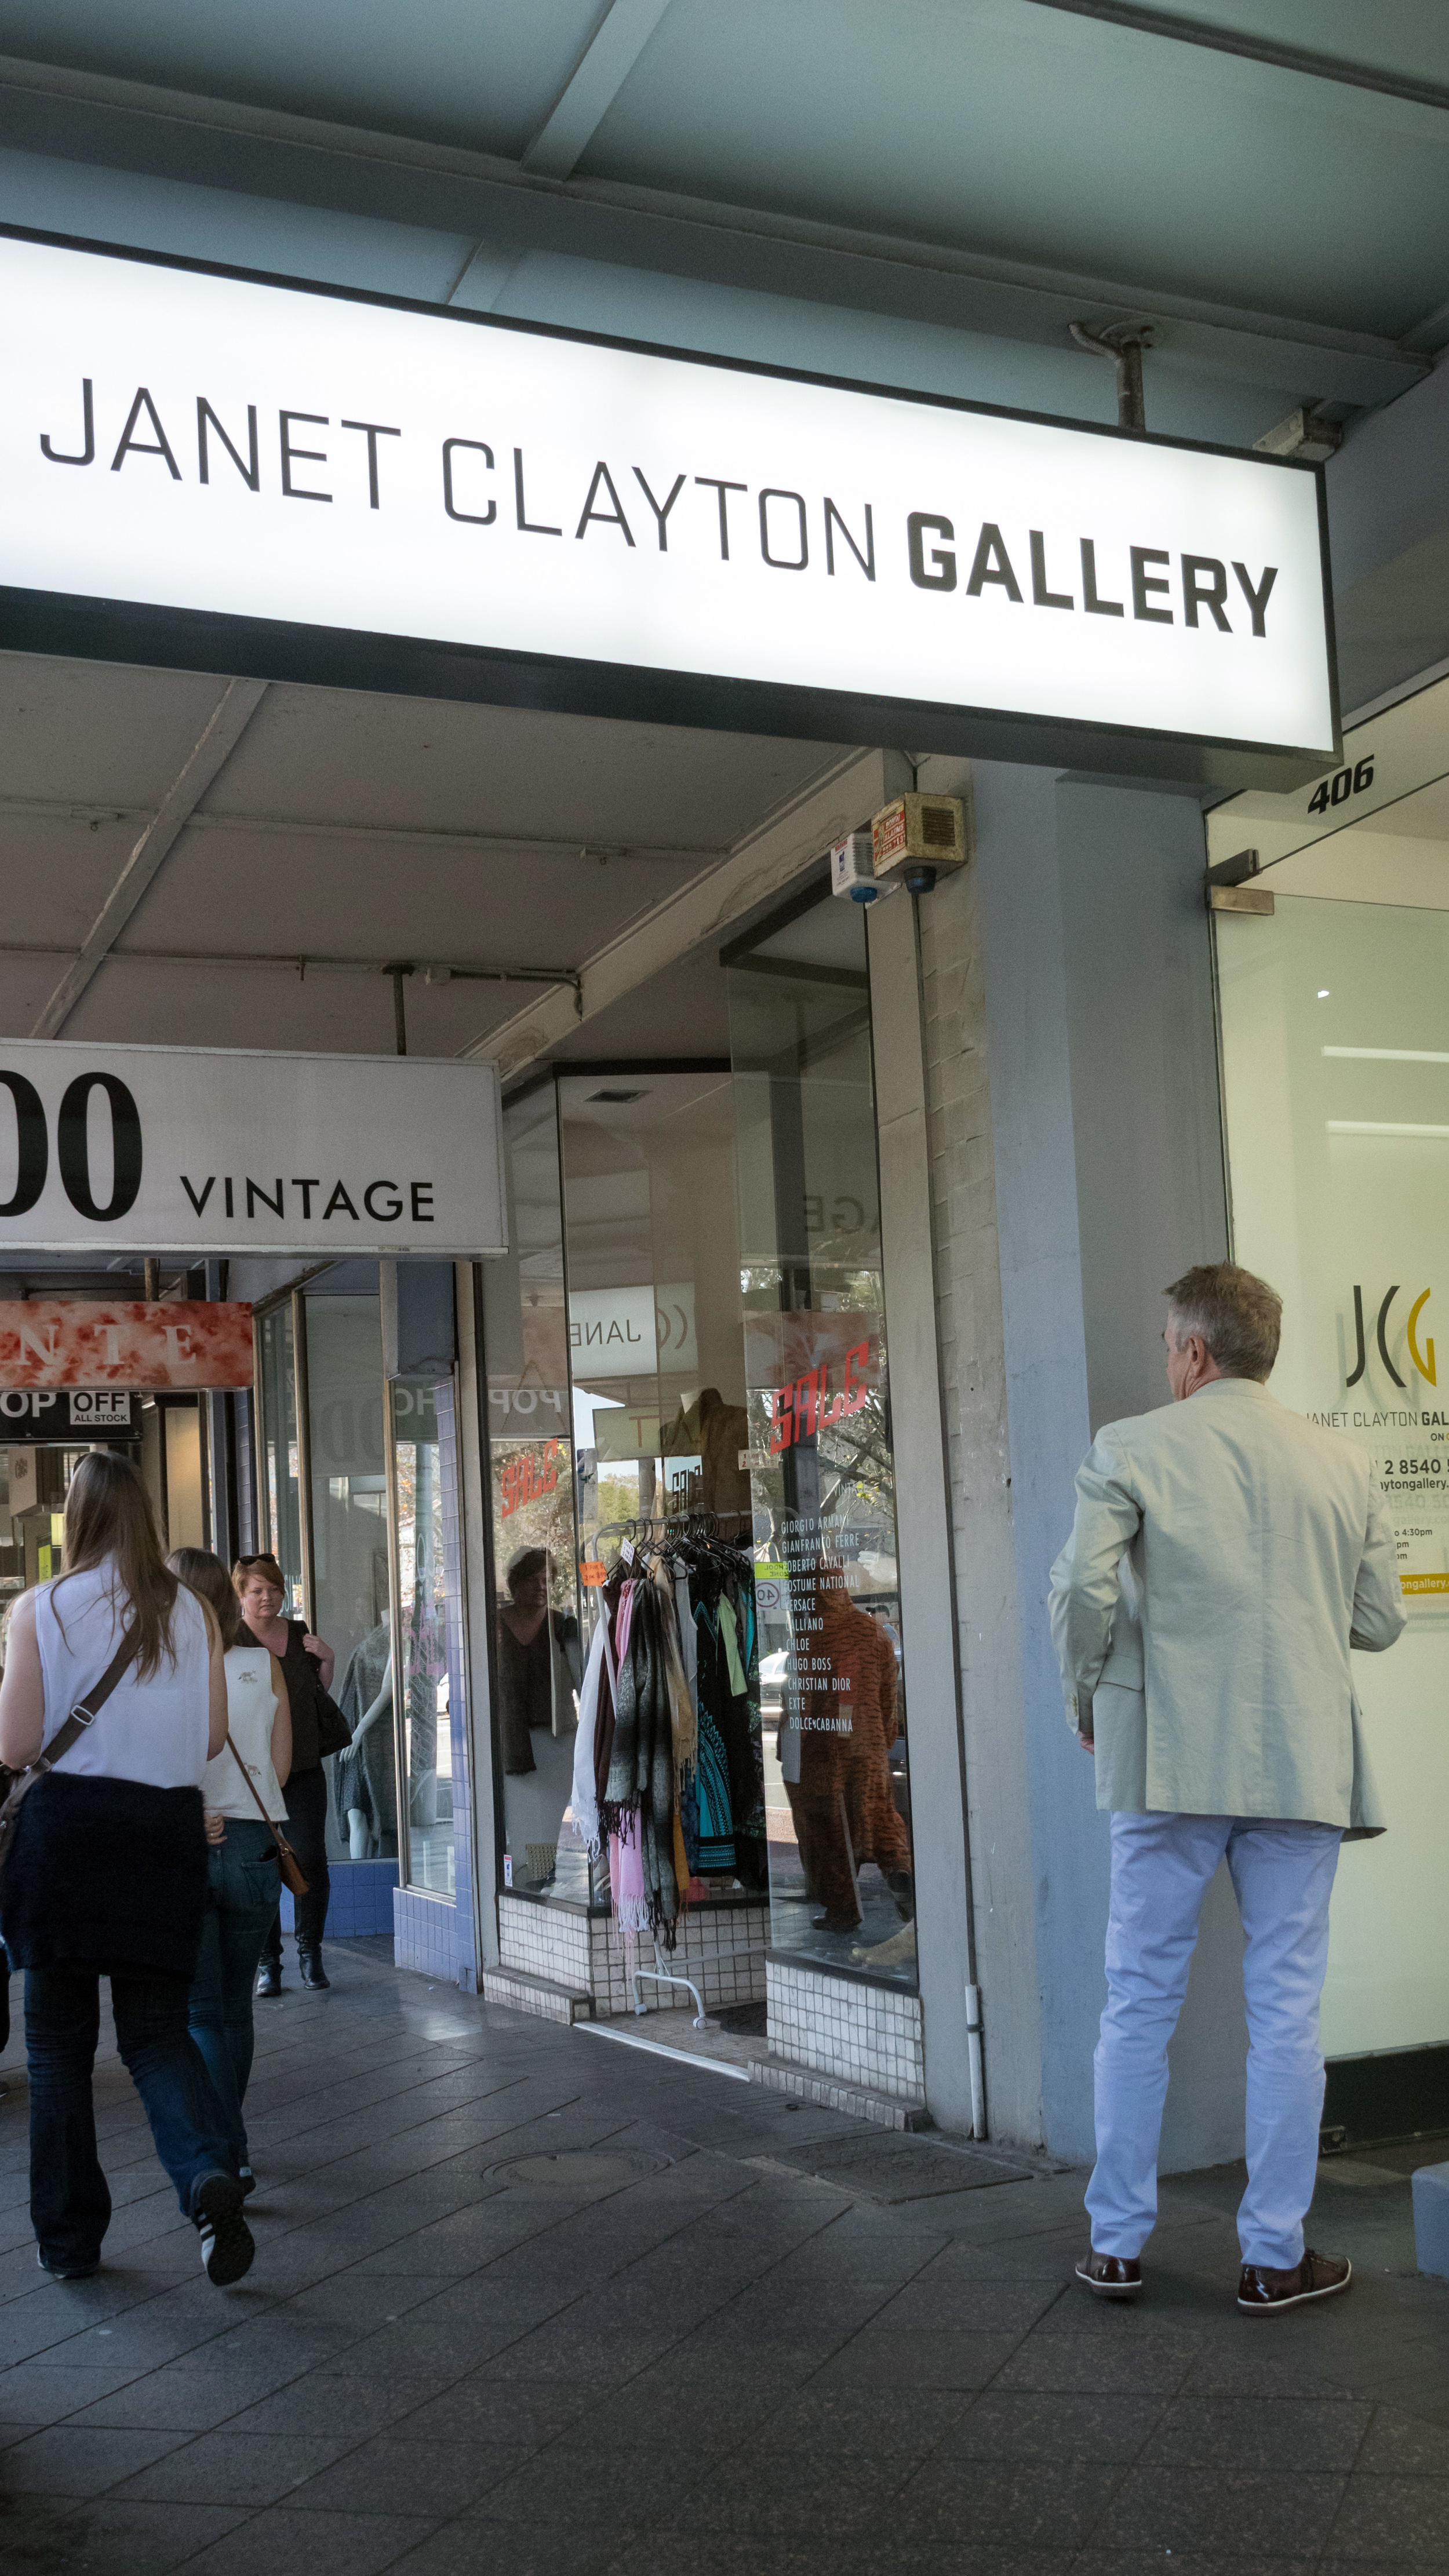 The new Janet Clayton Gallery at 406 Oxford Street, Paddington. Photography by James Blackwell